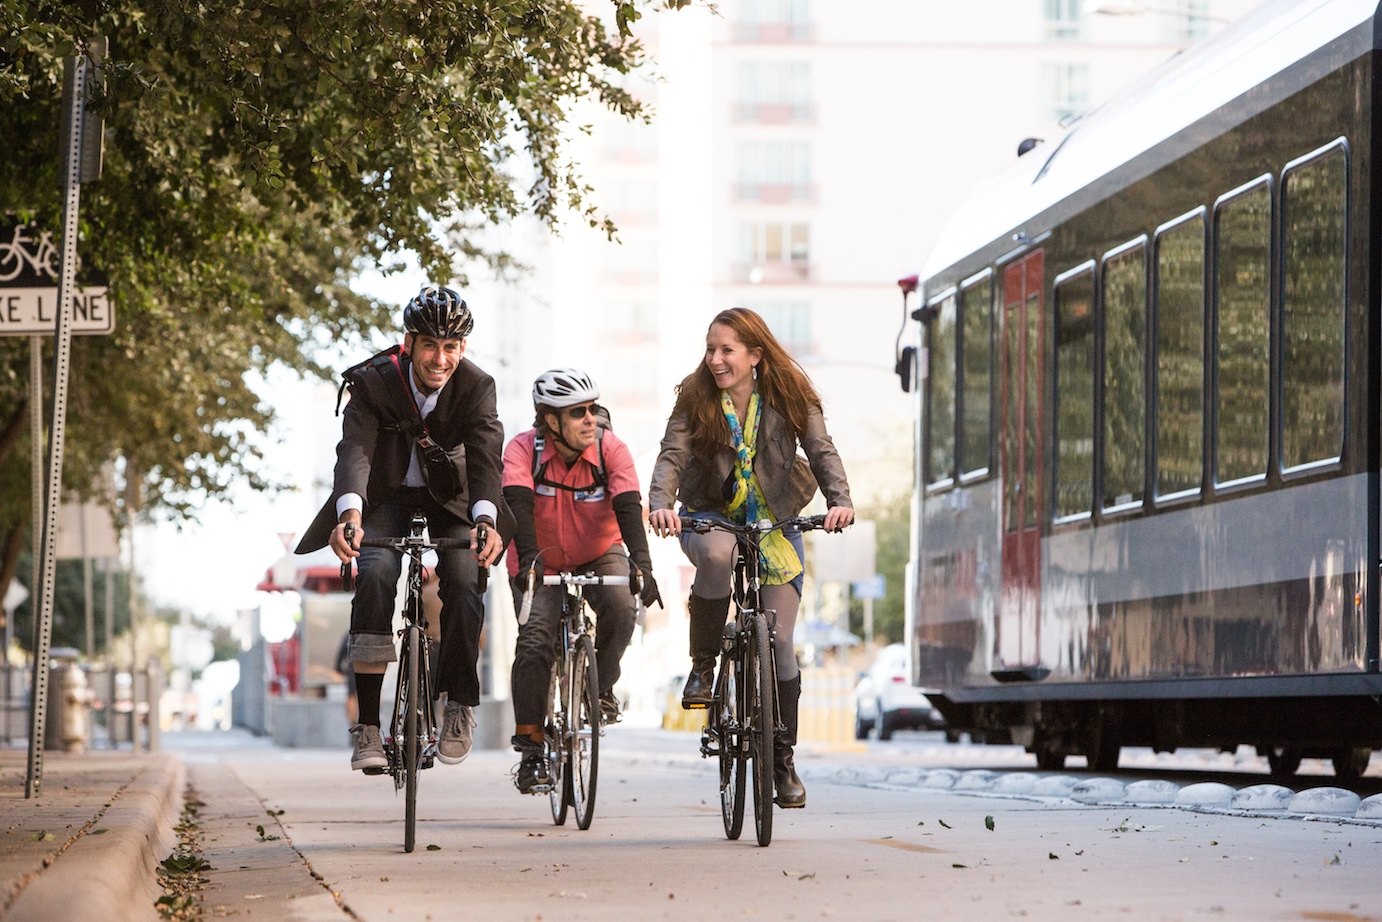 Sign up to help count bicyclists and pedestrians!